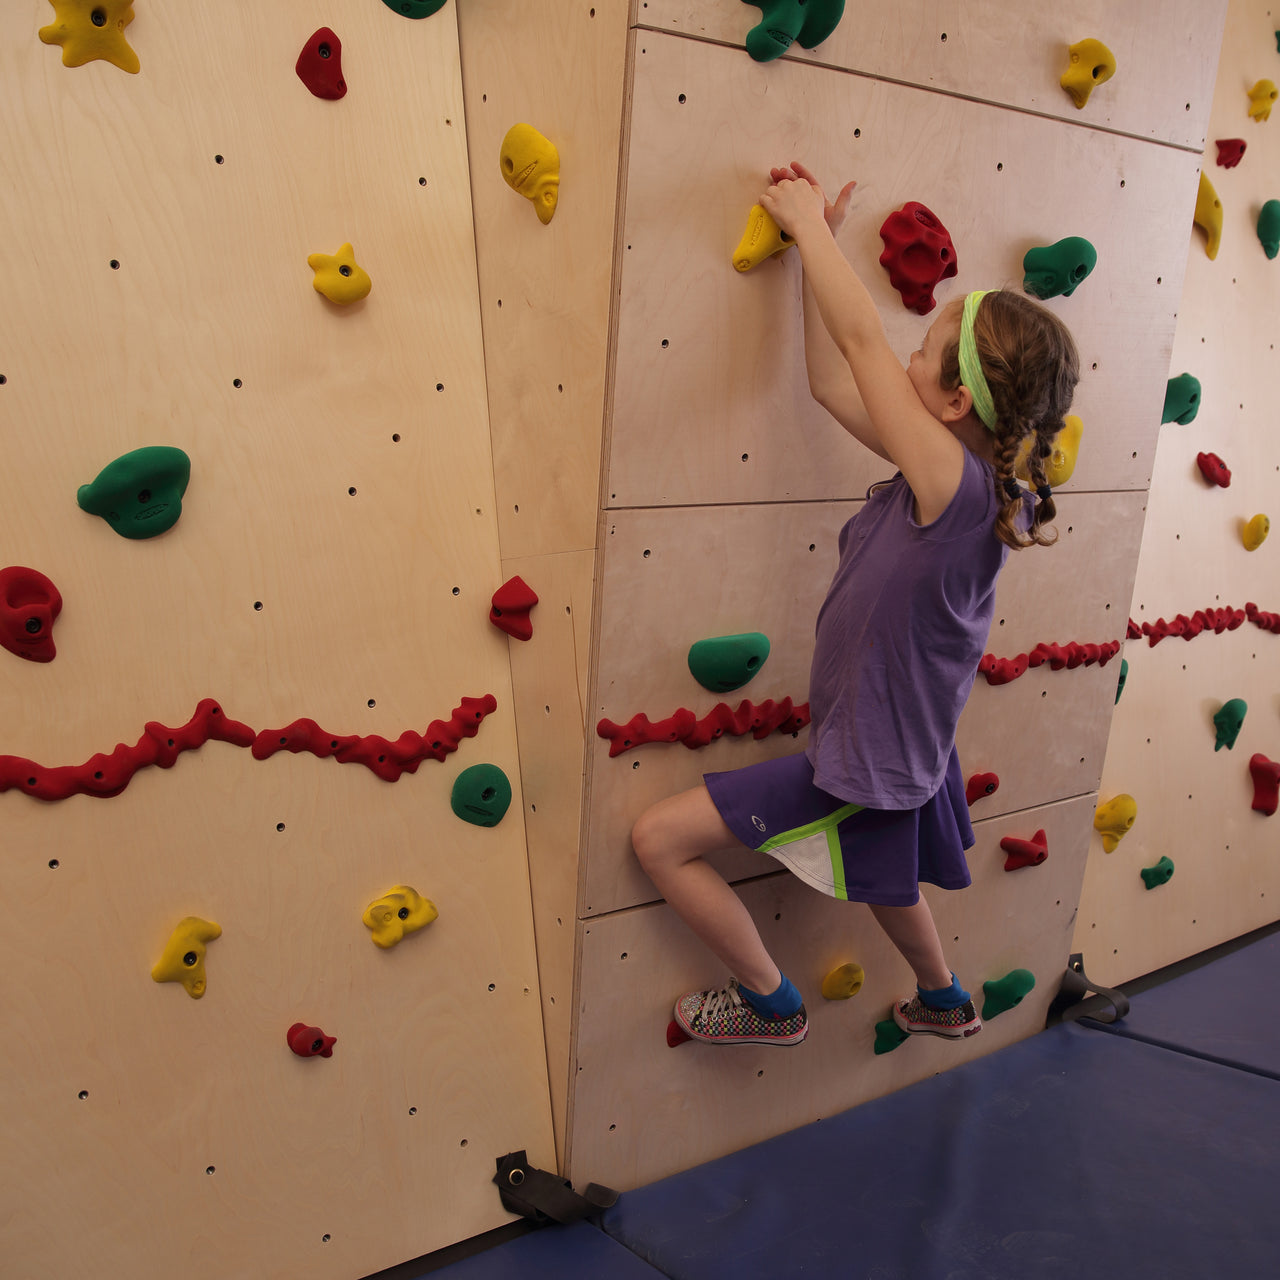 Increase the challenge of your climbing wall with an Overhang.